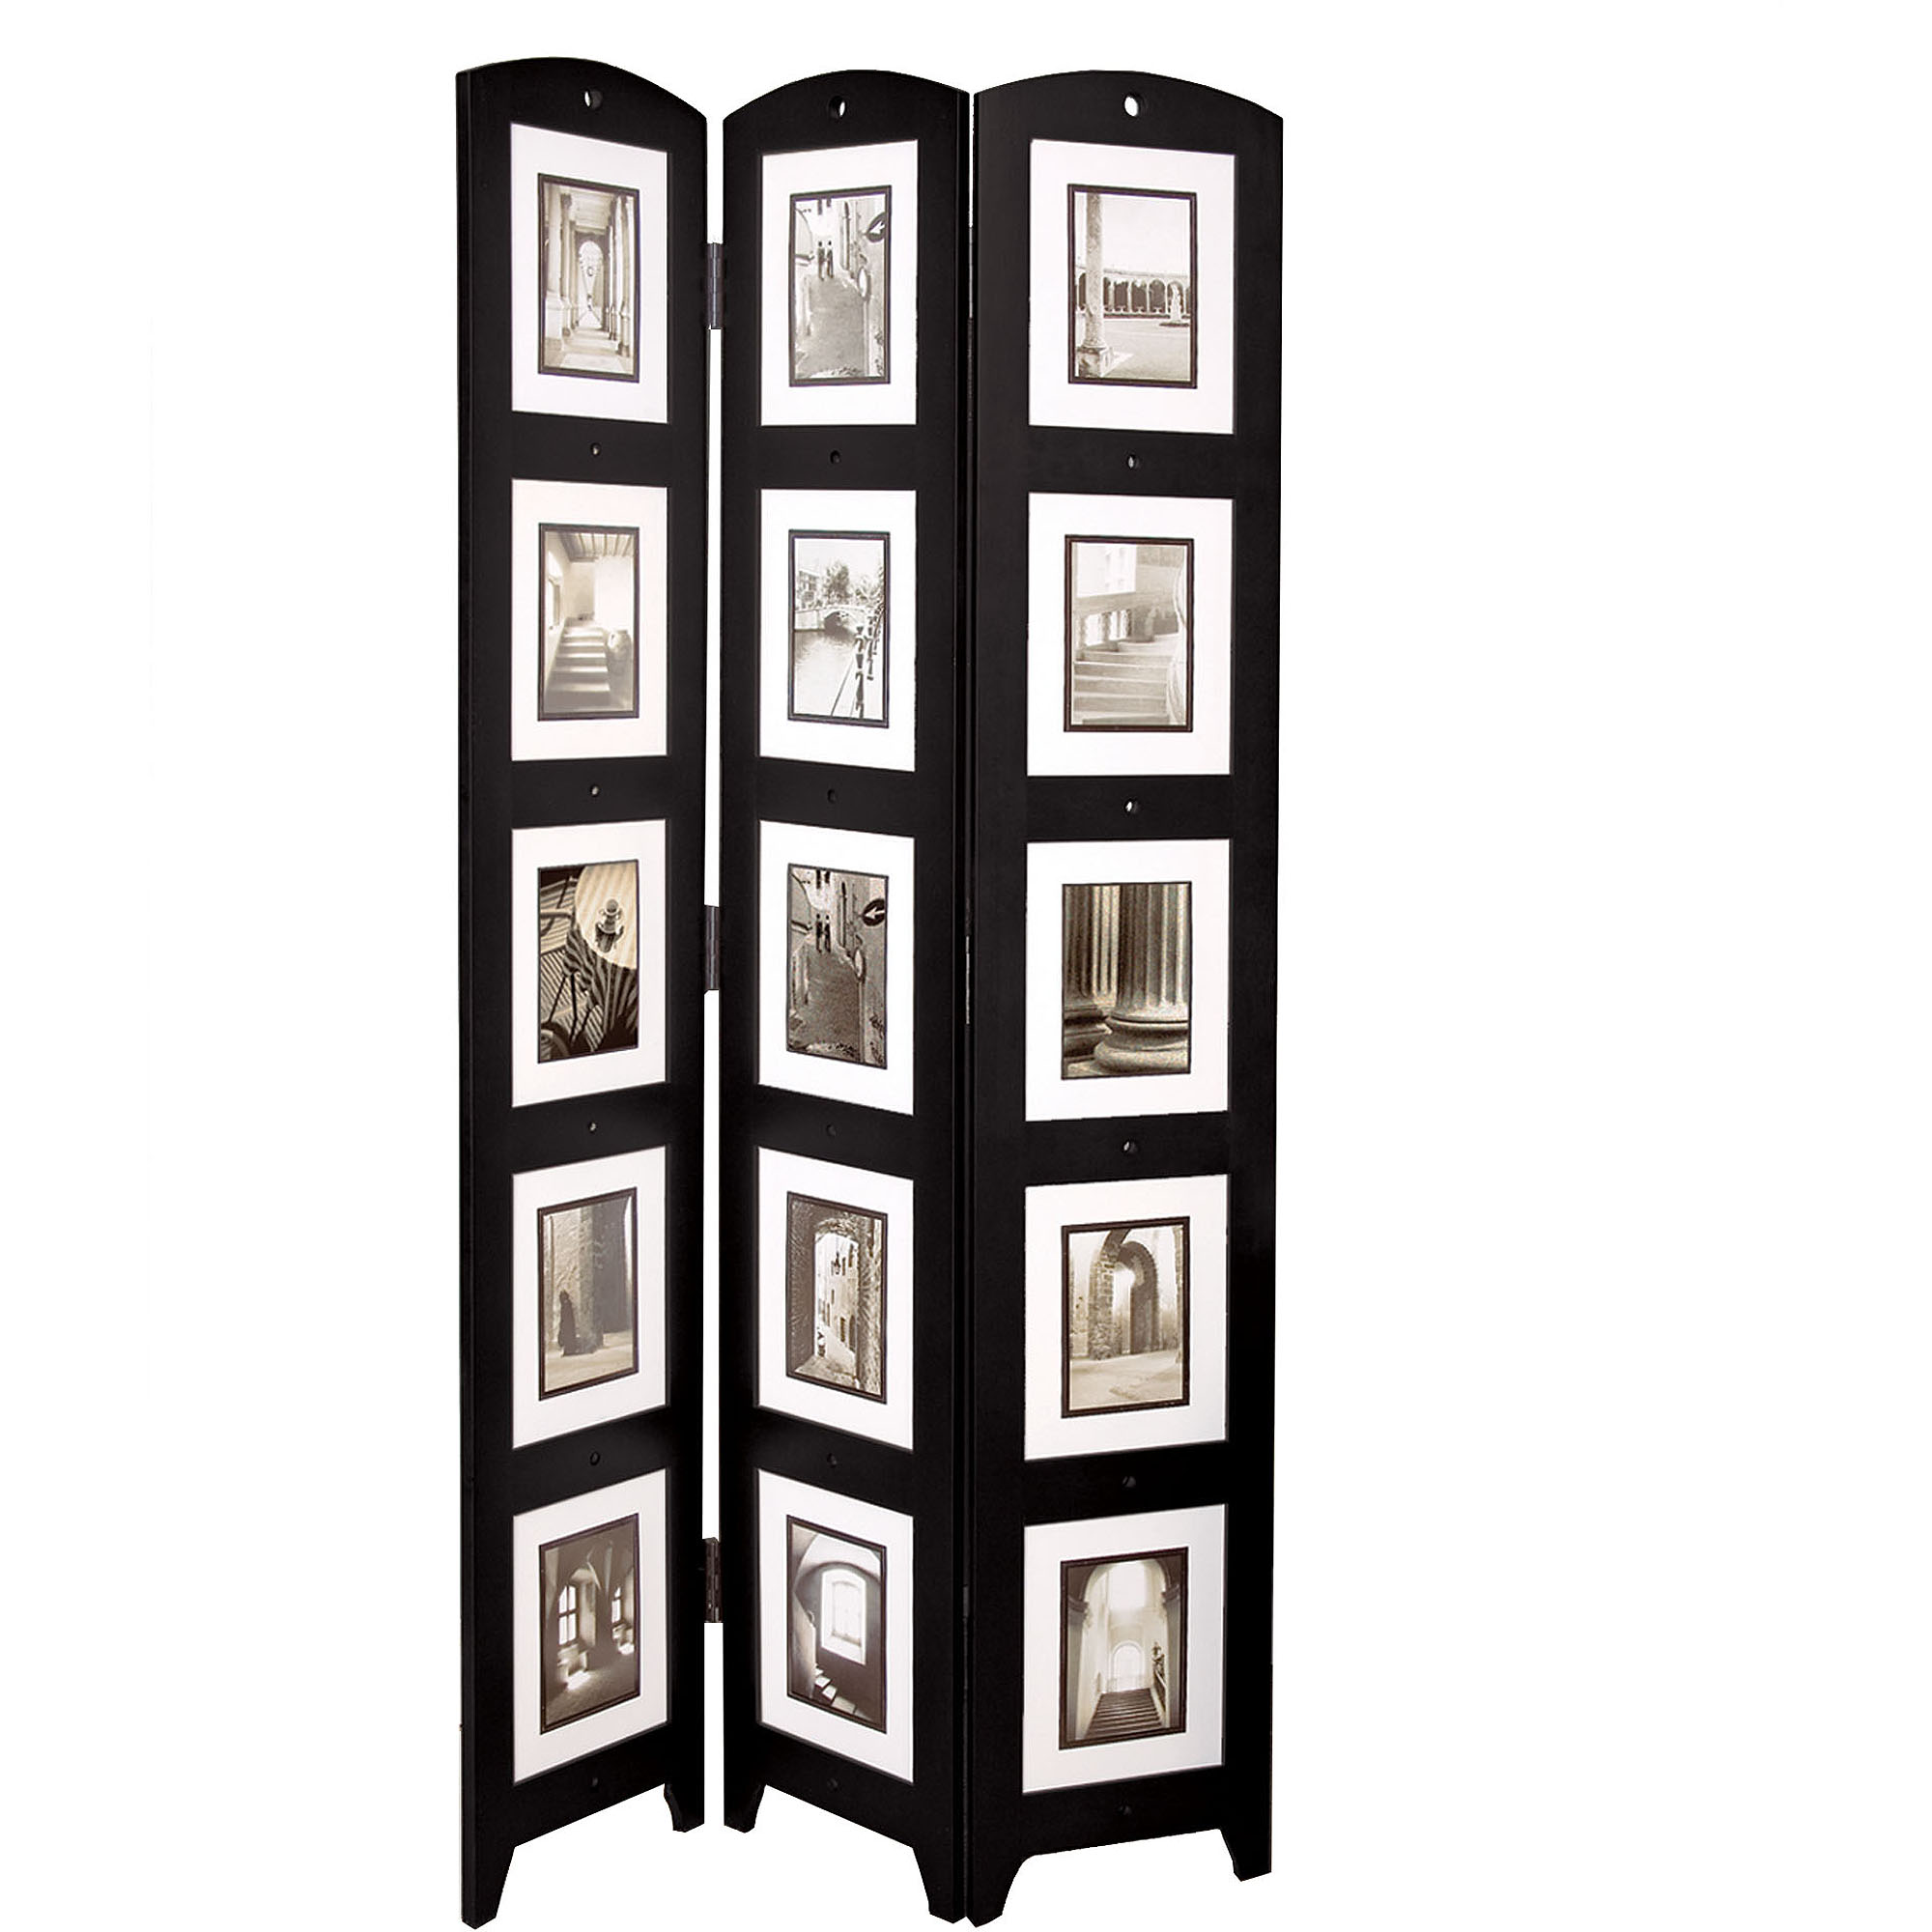 kiera grace triple panel black photo screen room divider holds 15 photos 33 x 645 walmartcom